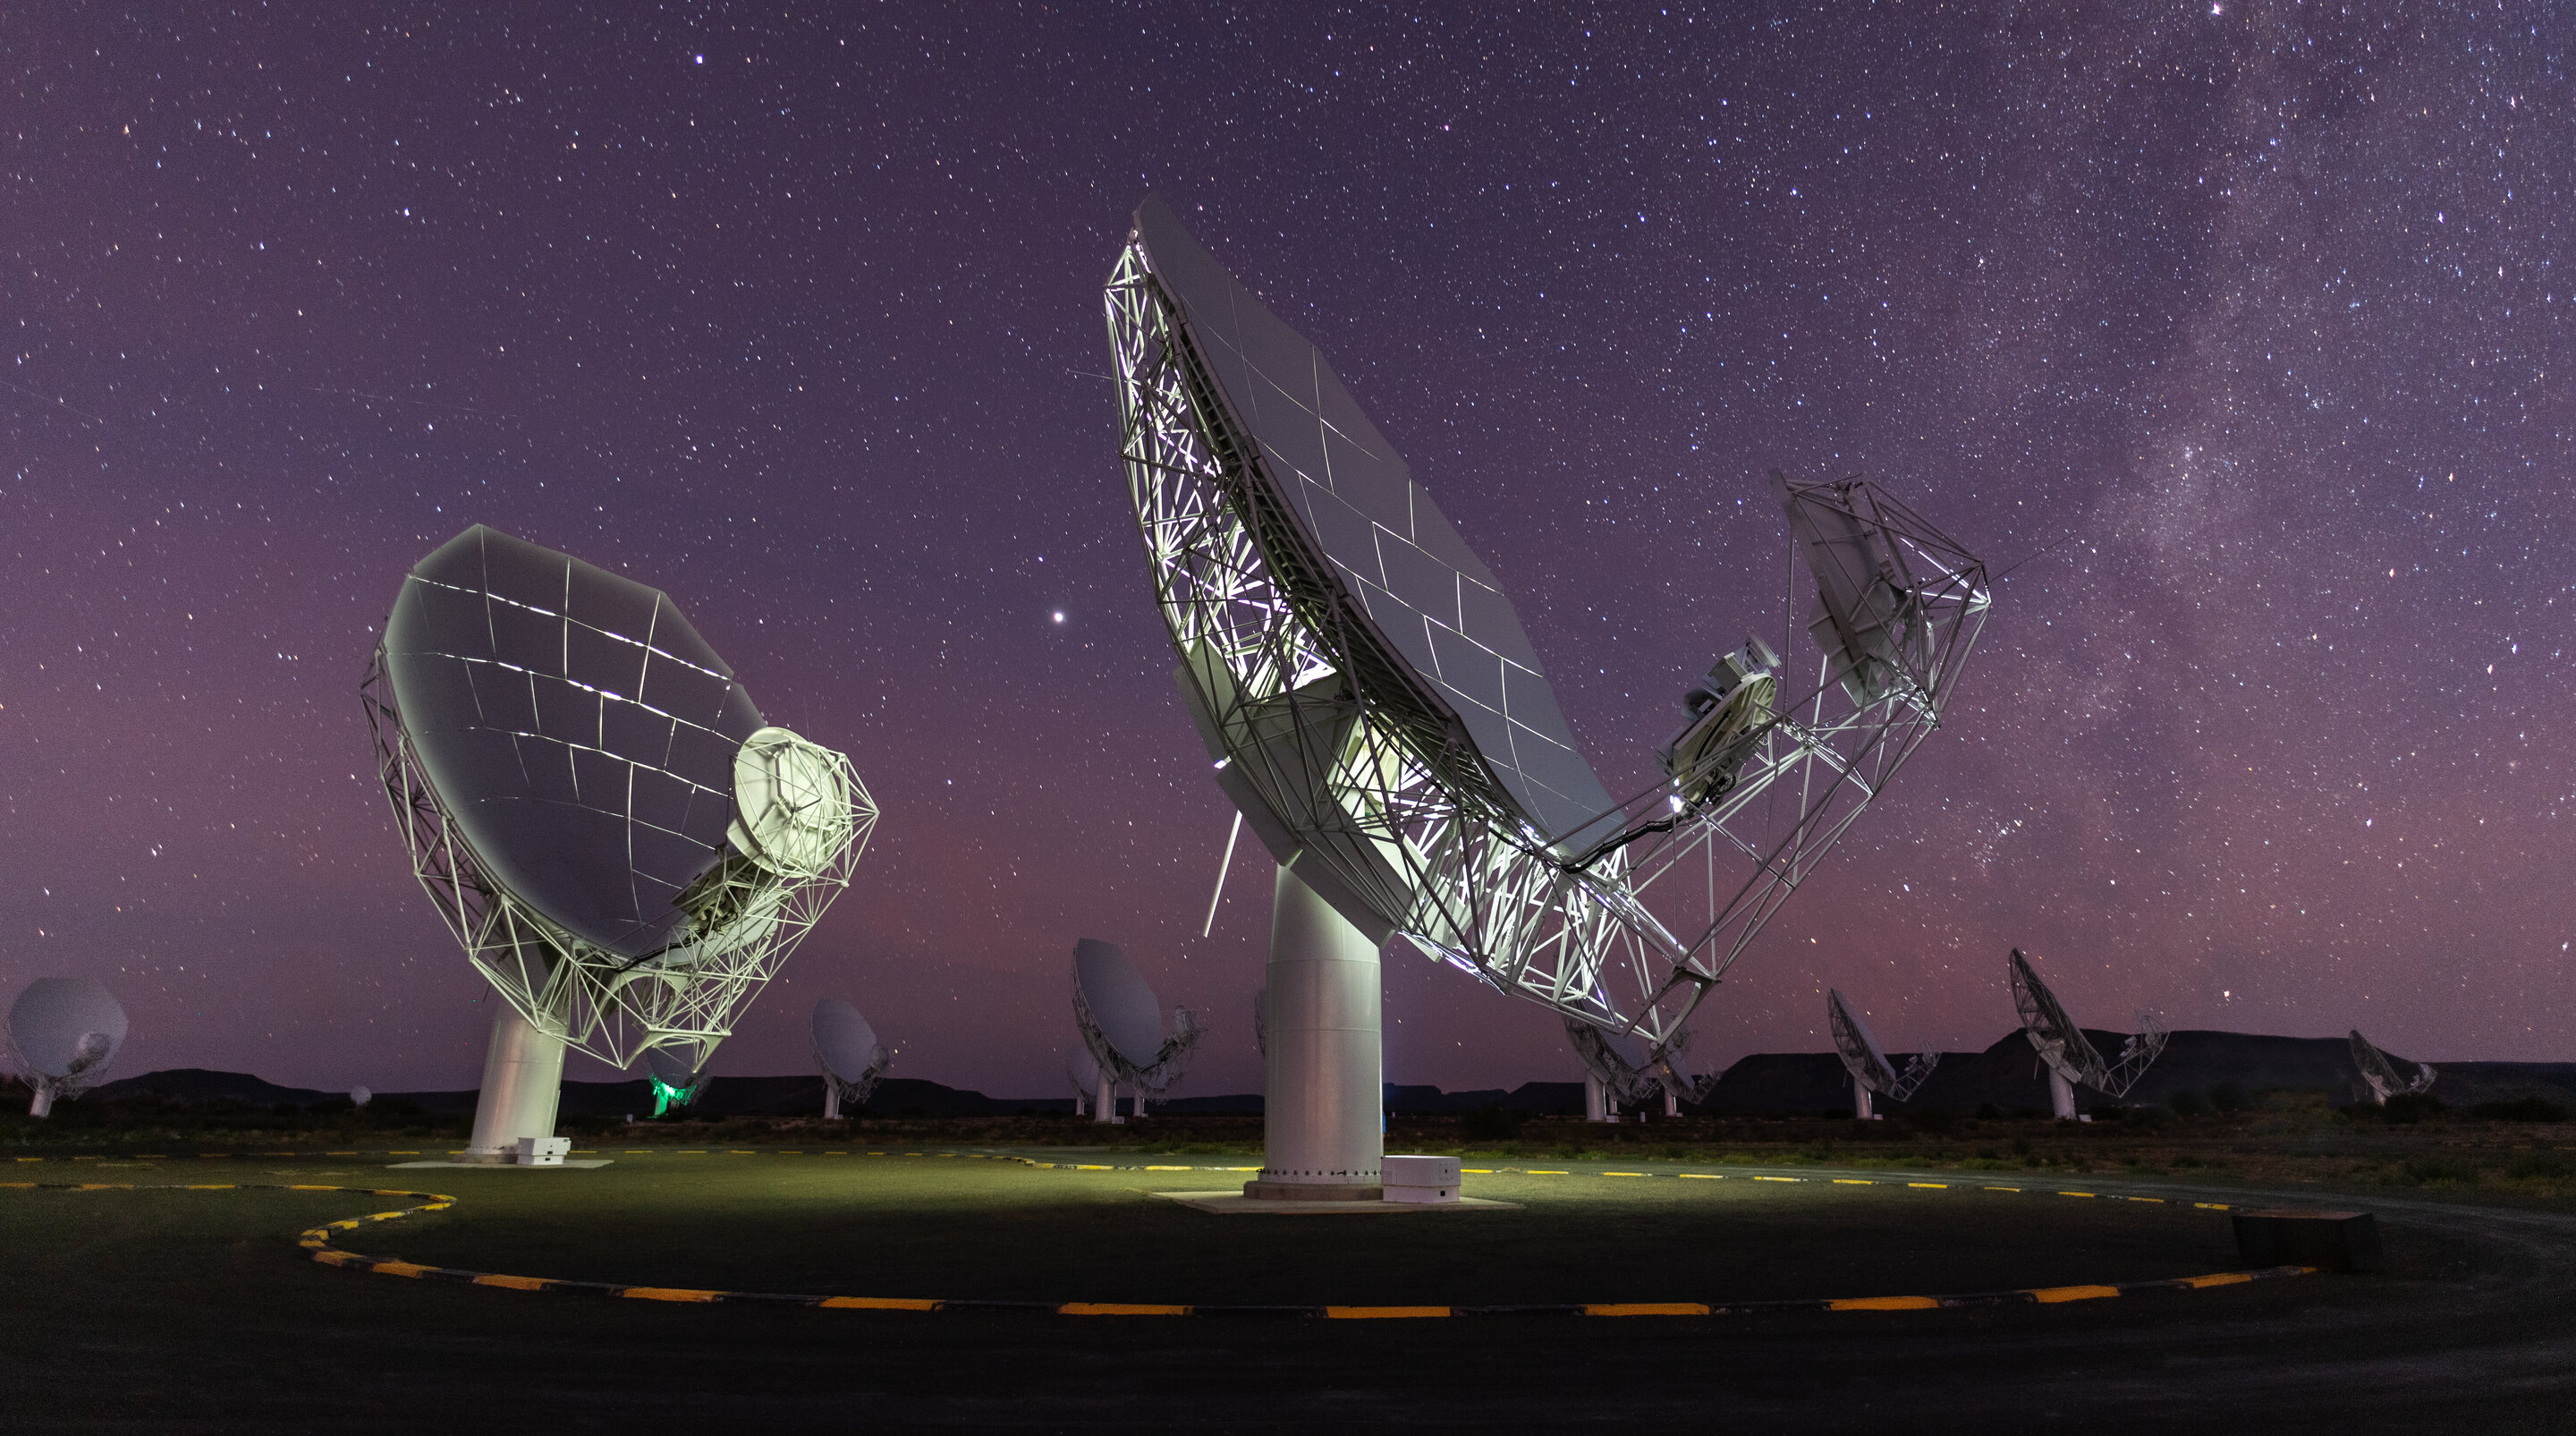 Photograph of the MeerKAT telescope in South Africa